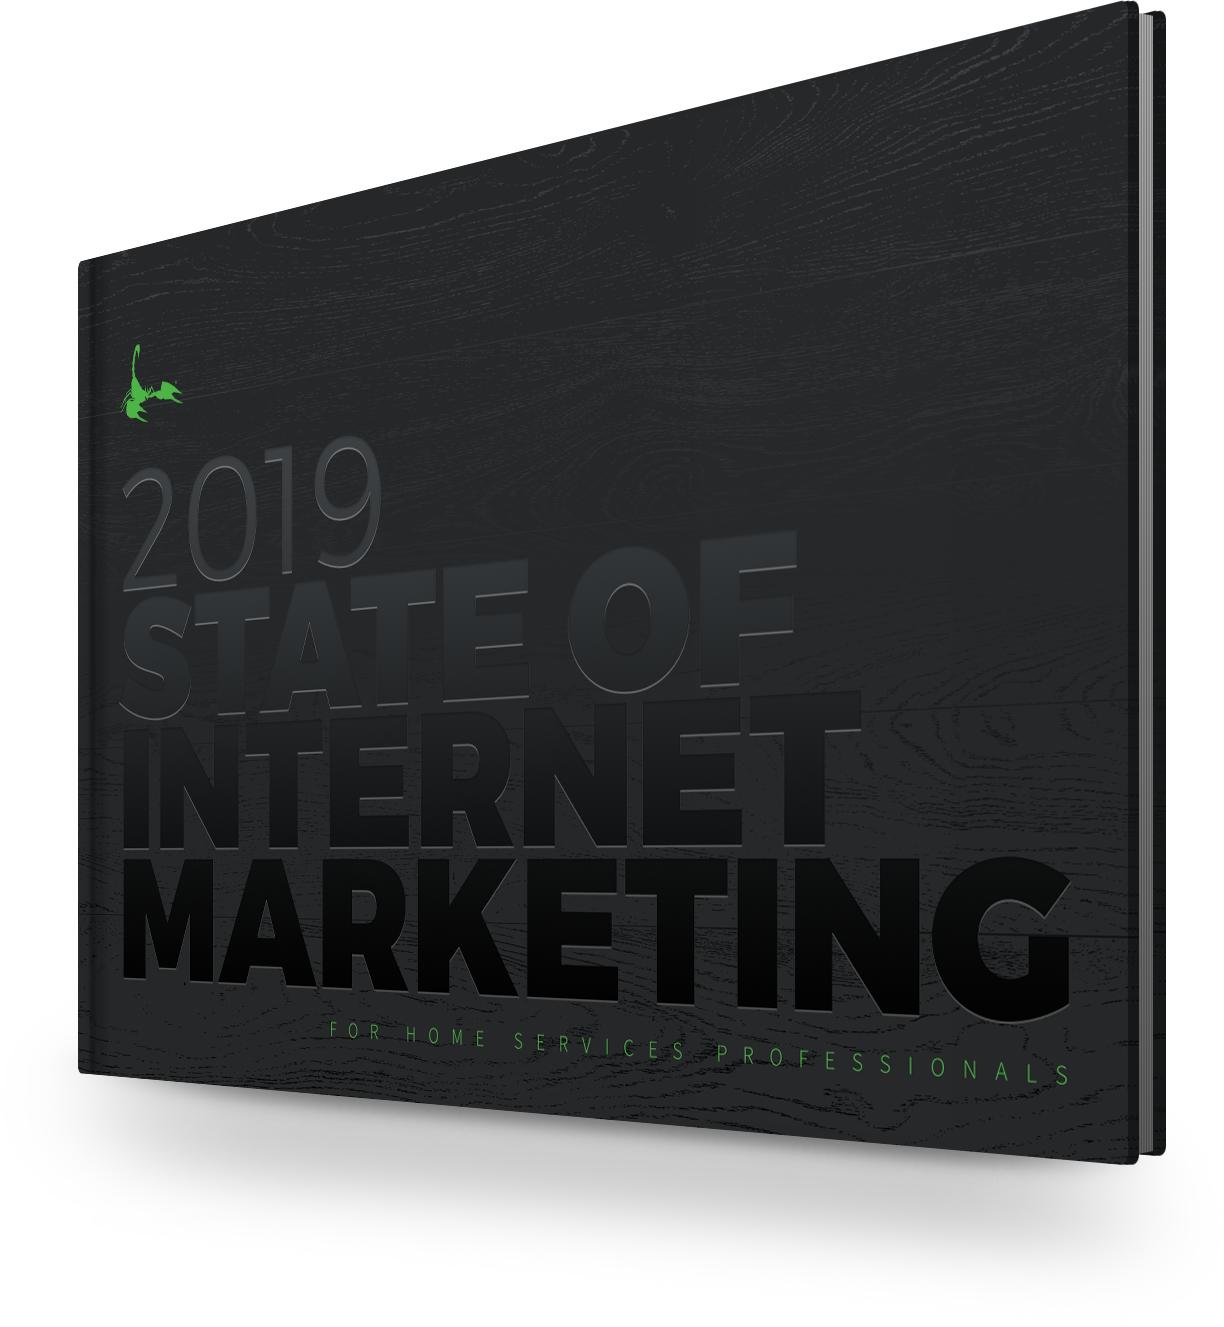 Image of the State of Internet Marketing book.